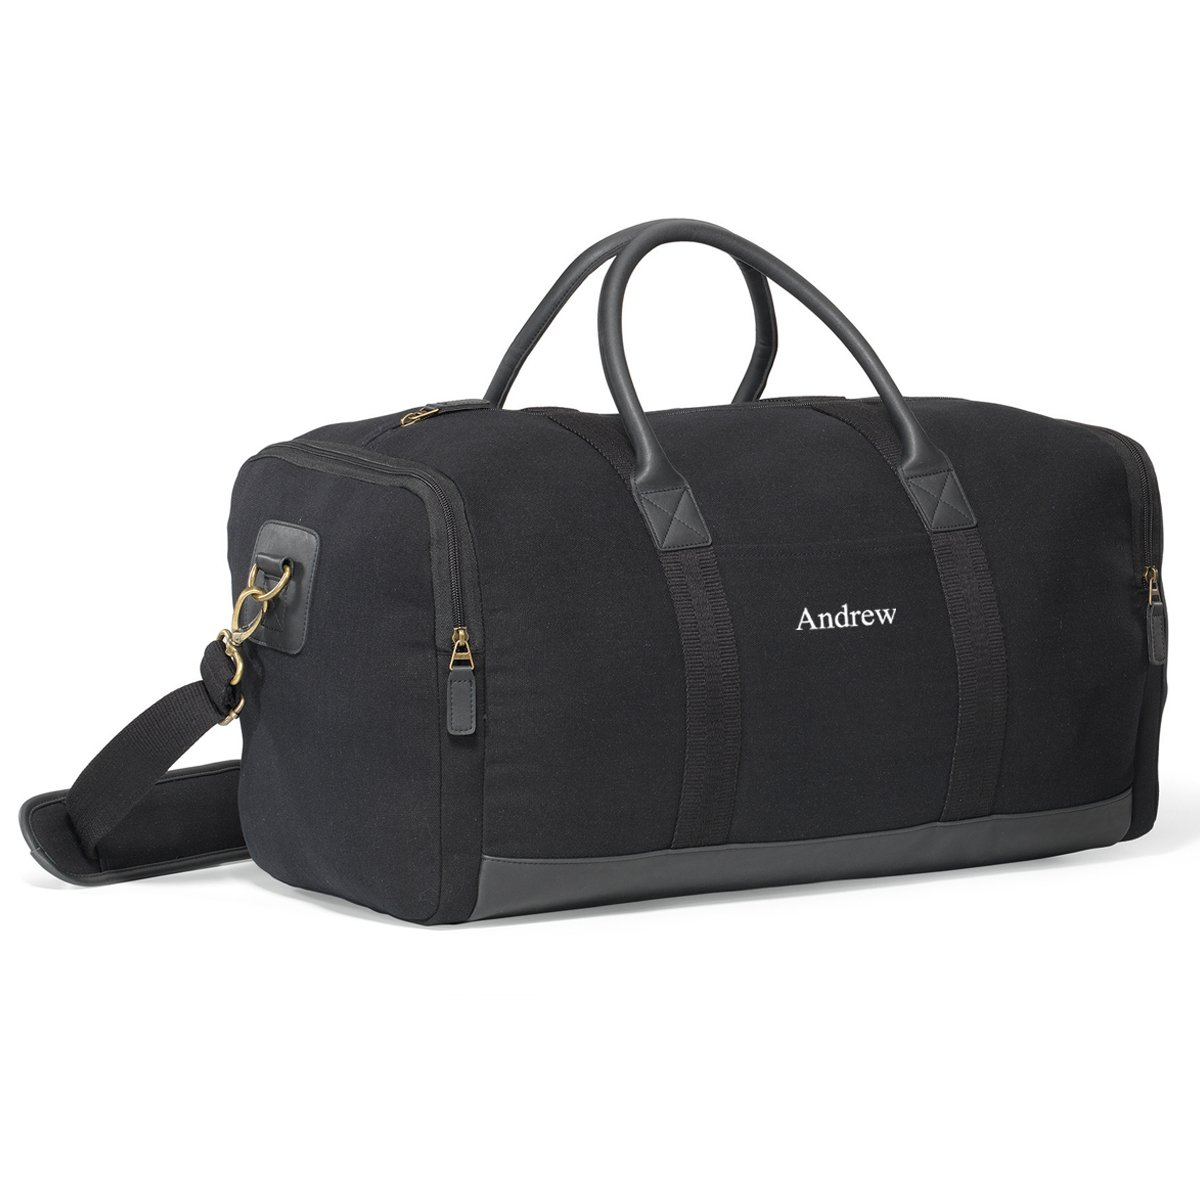 0043549852 Personalized Black Canvas Duffle Bag - Embroidered Canvas Gym Bag   Amazon.in  Bags